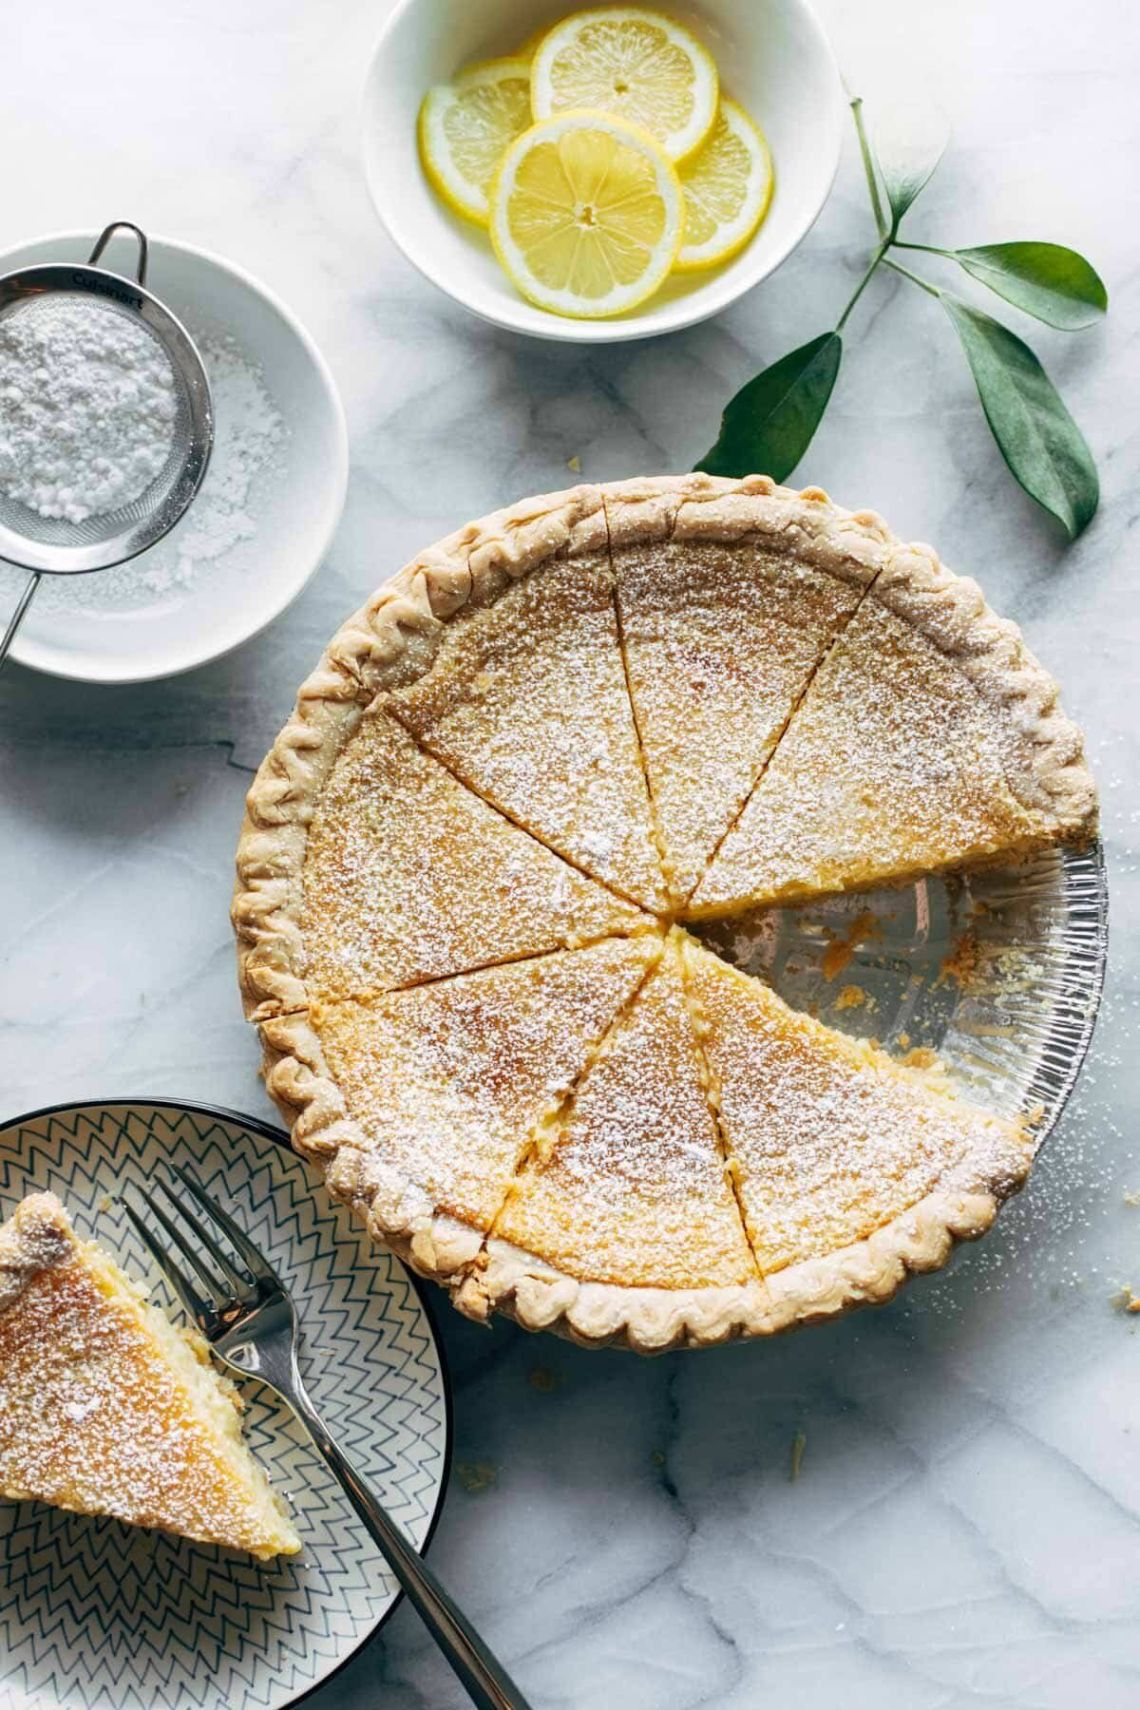 Get the Blender Lemon Pie recipe from Pinch of Yum